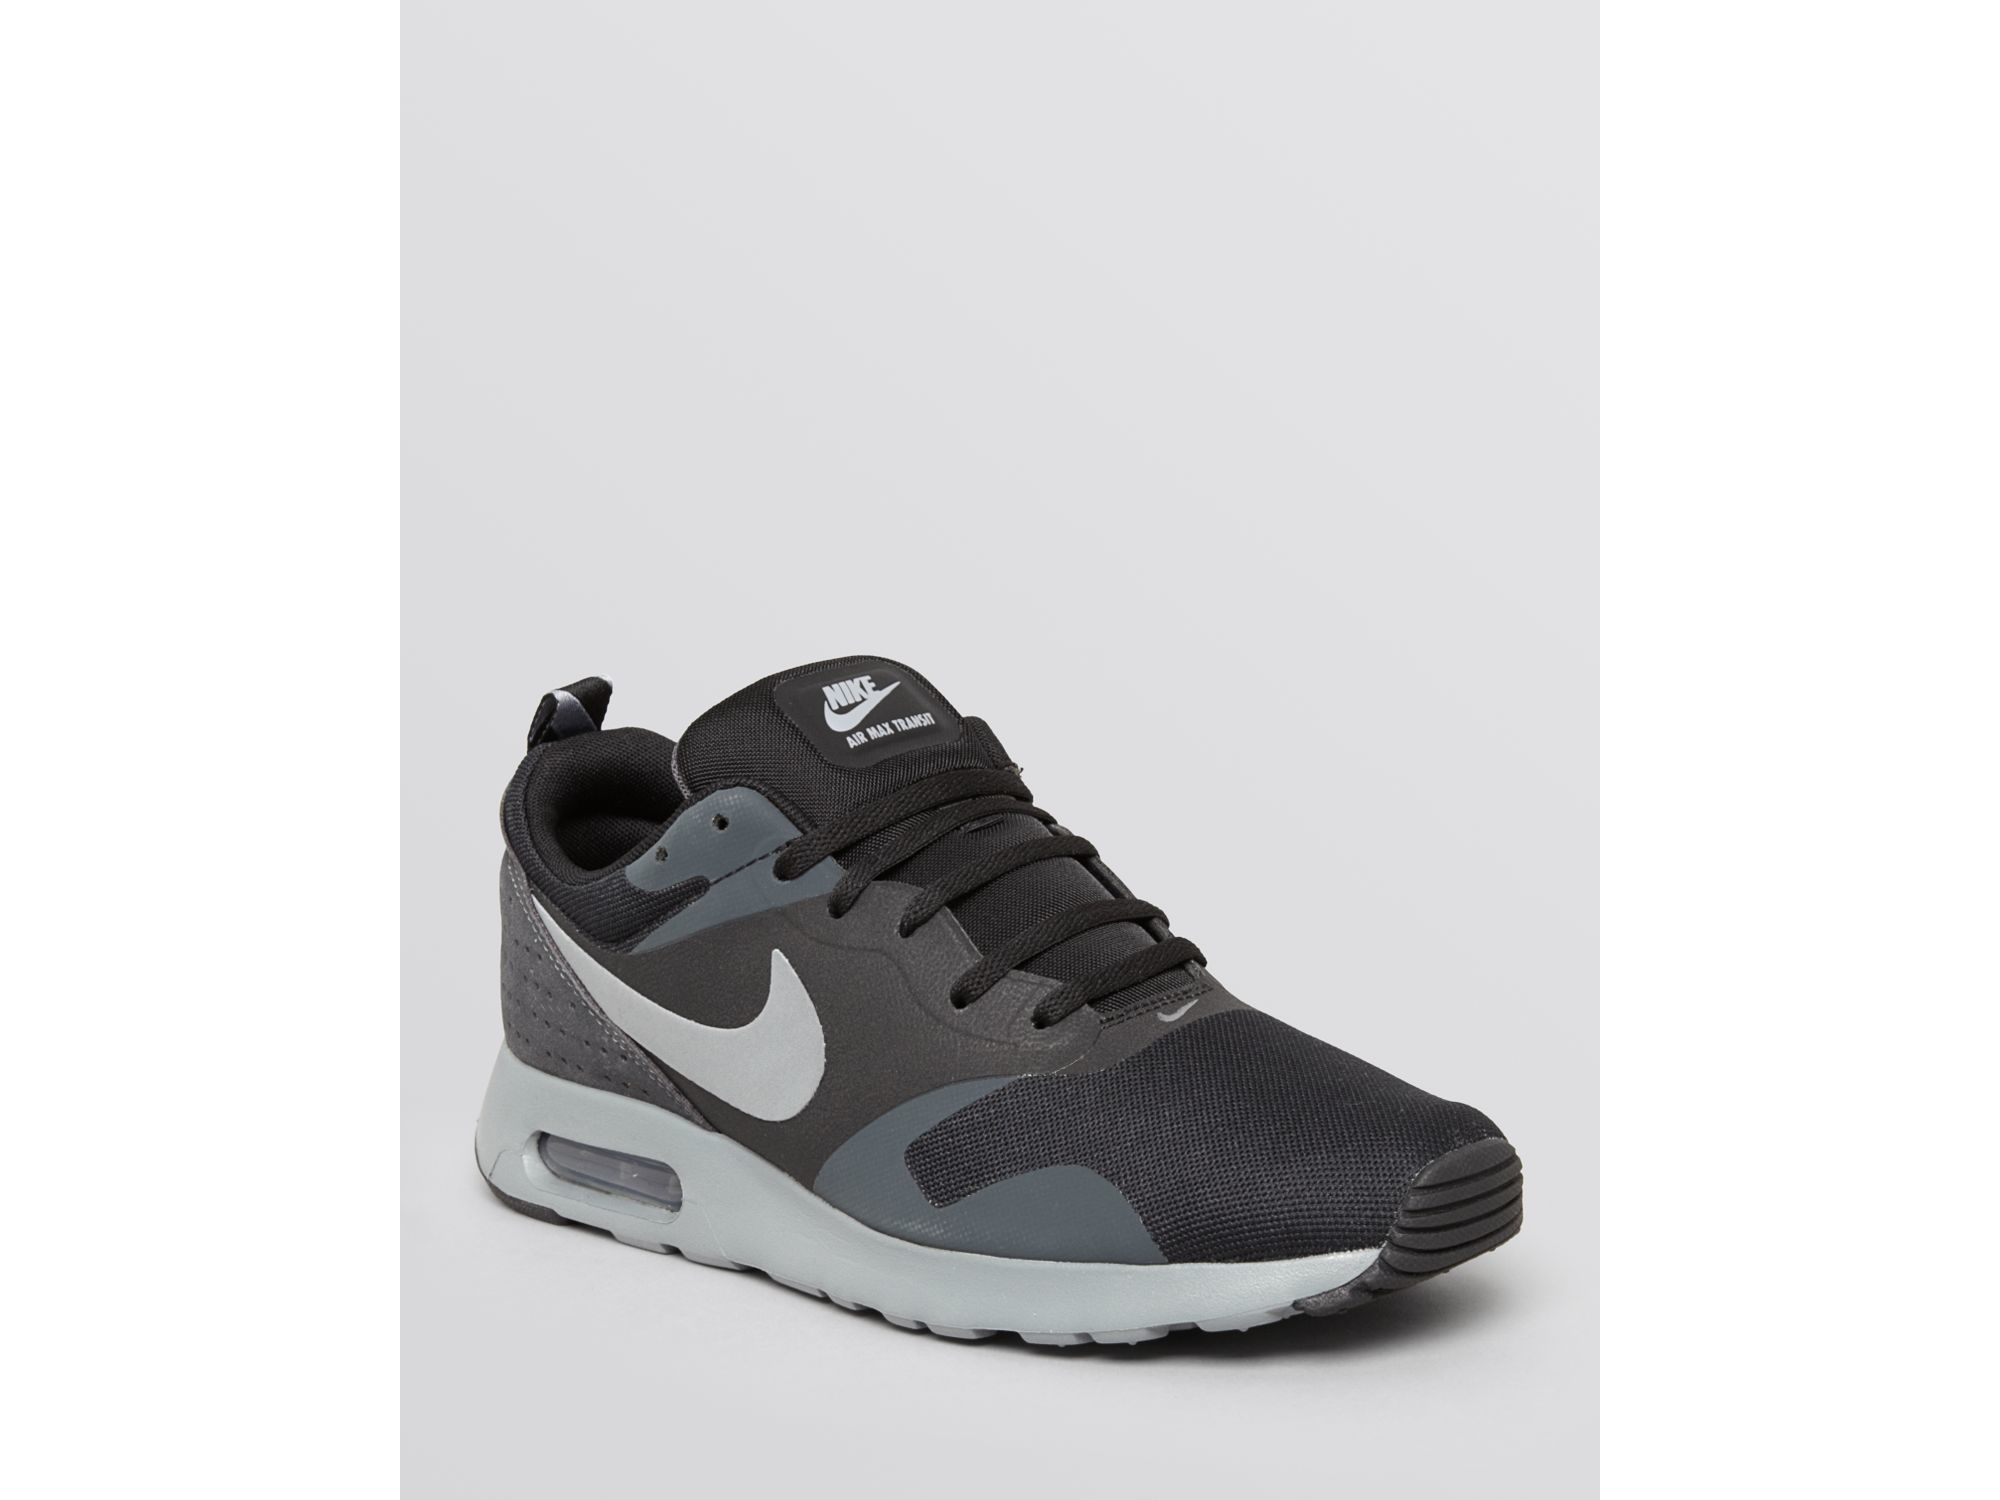 5cfc7af4c93c where can i buy lyst nike air max transit sneakers in black for men b61f8  287d1